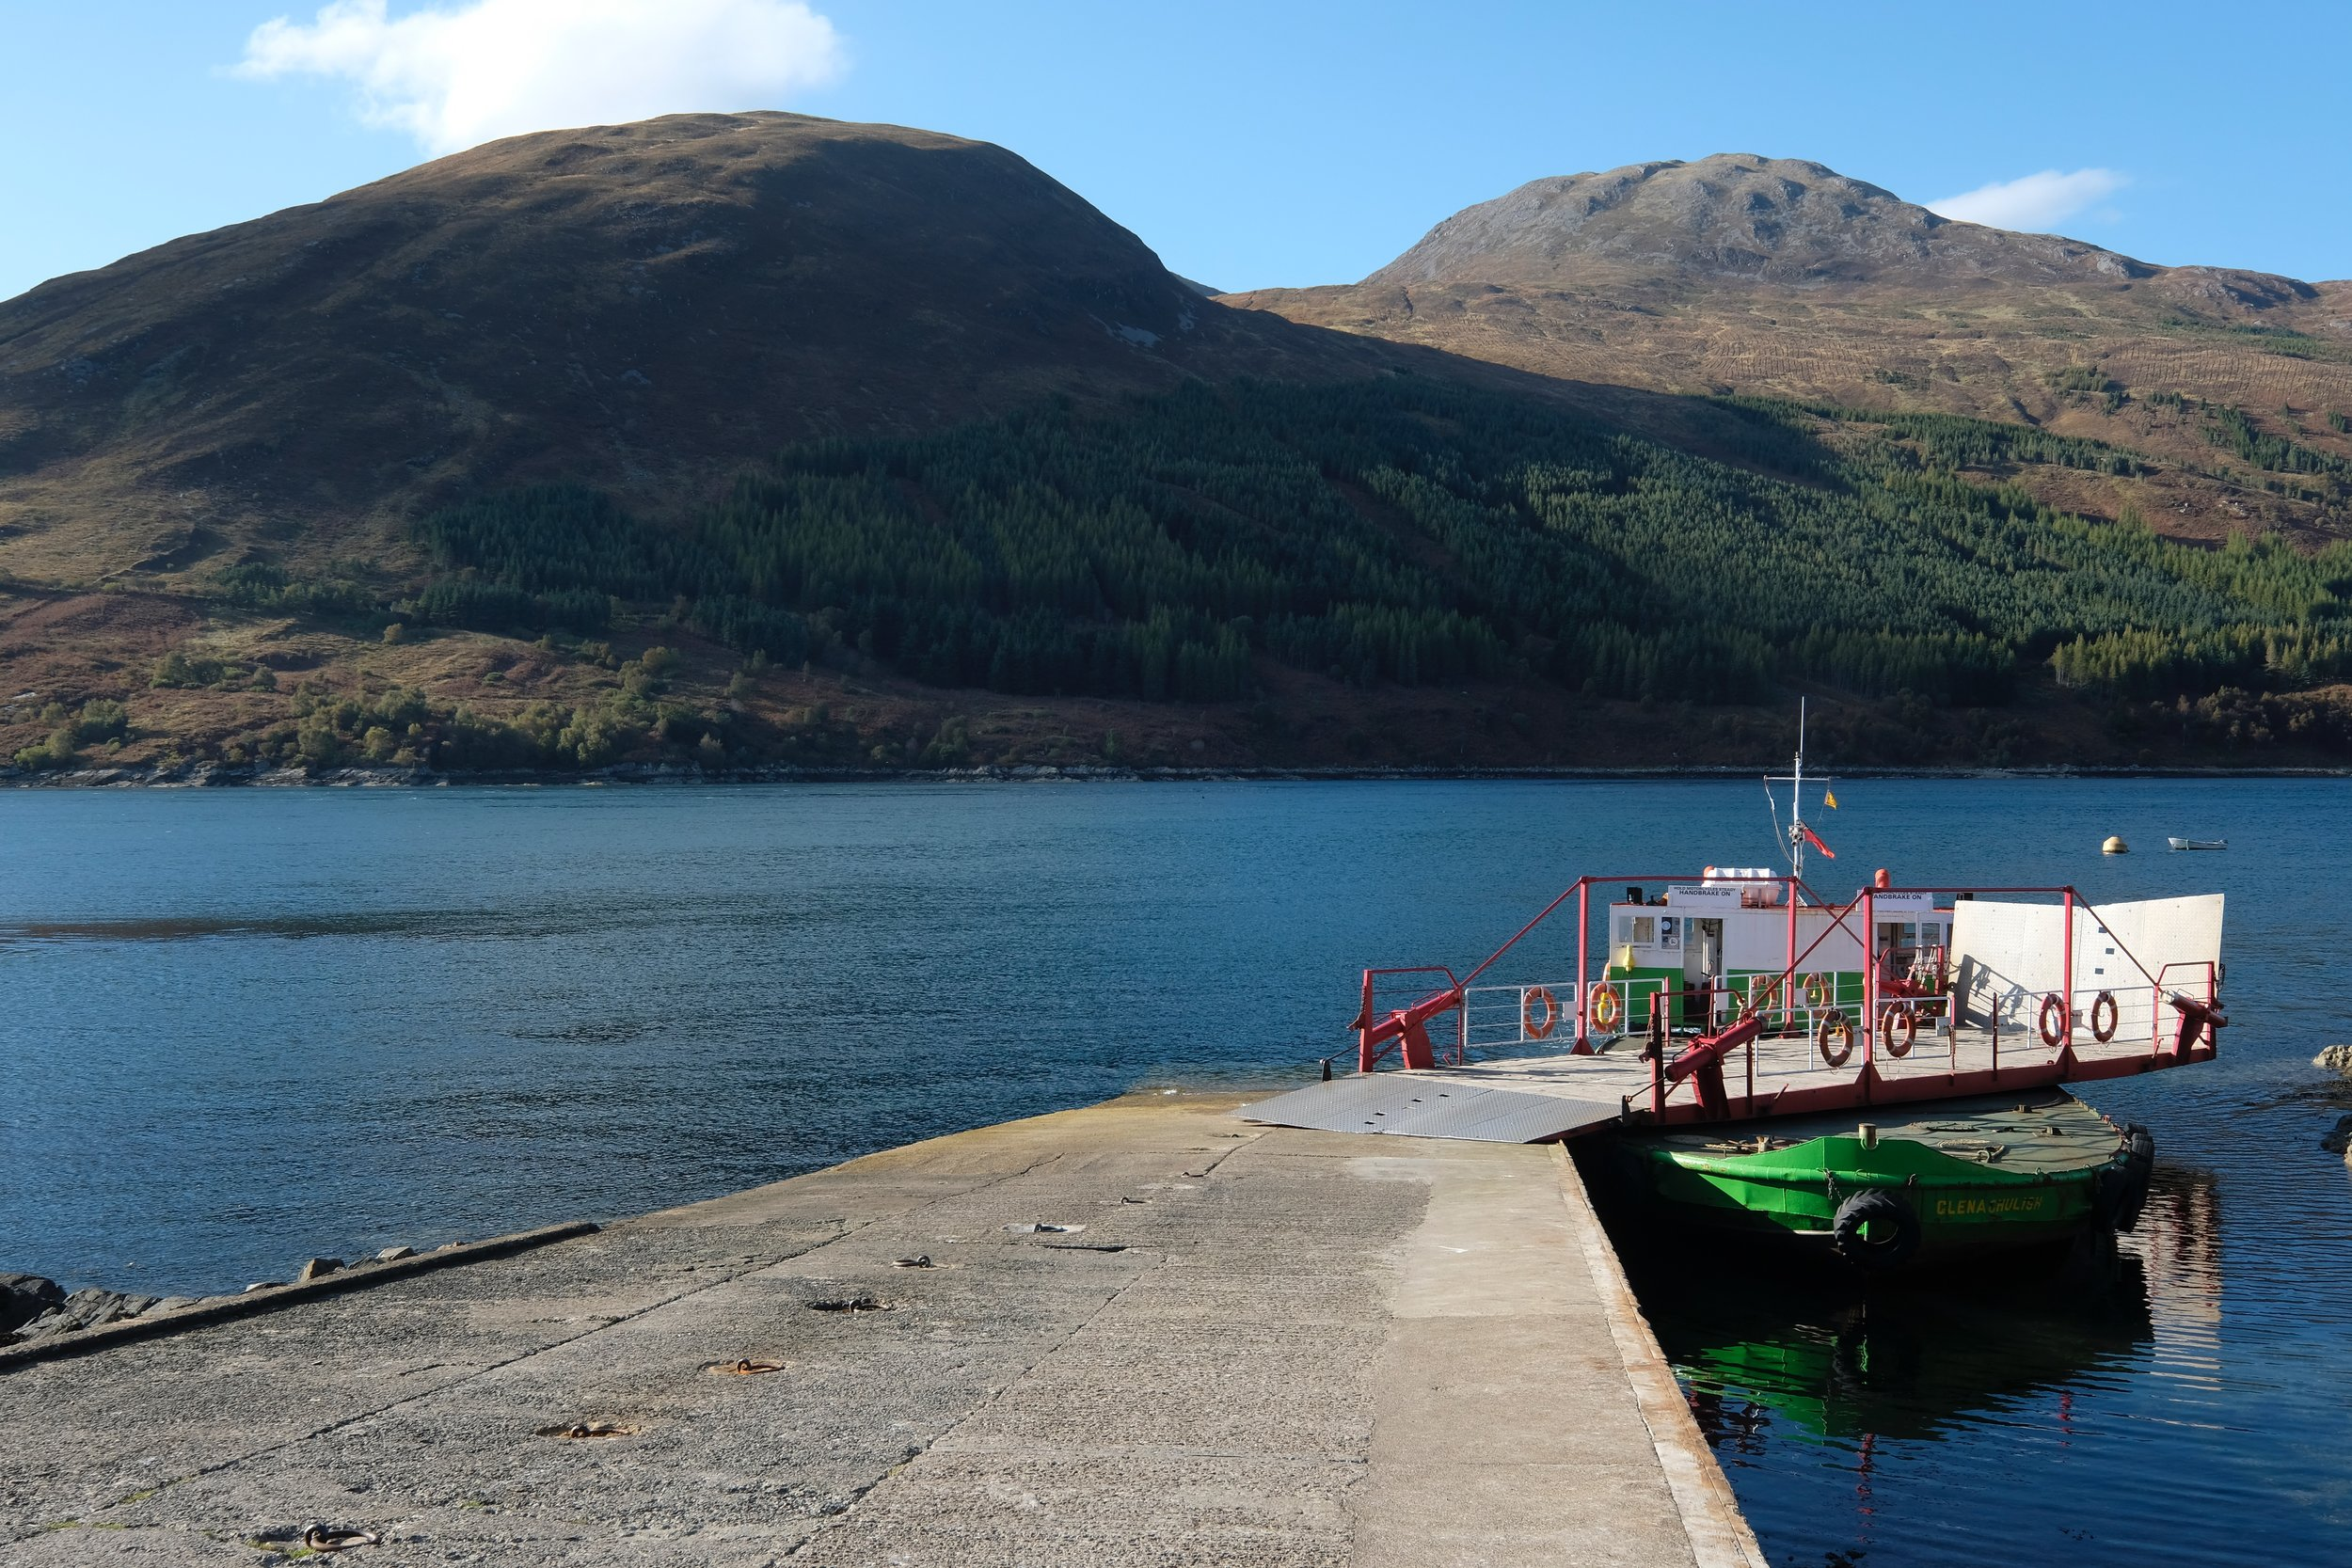 If you drive across to Skye the ferry at Glenelg is a real treat - spectacular scenery and a trip on the world's last rotating car ferry, and the star of many films and TV programmes